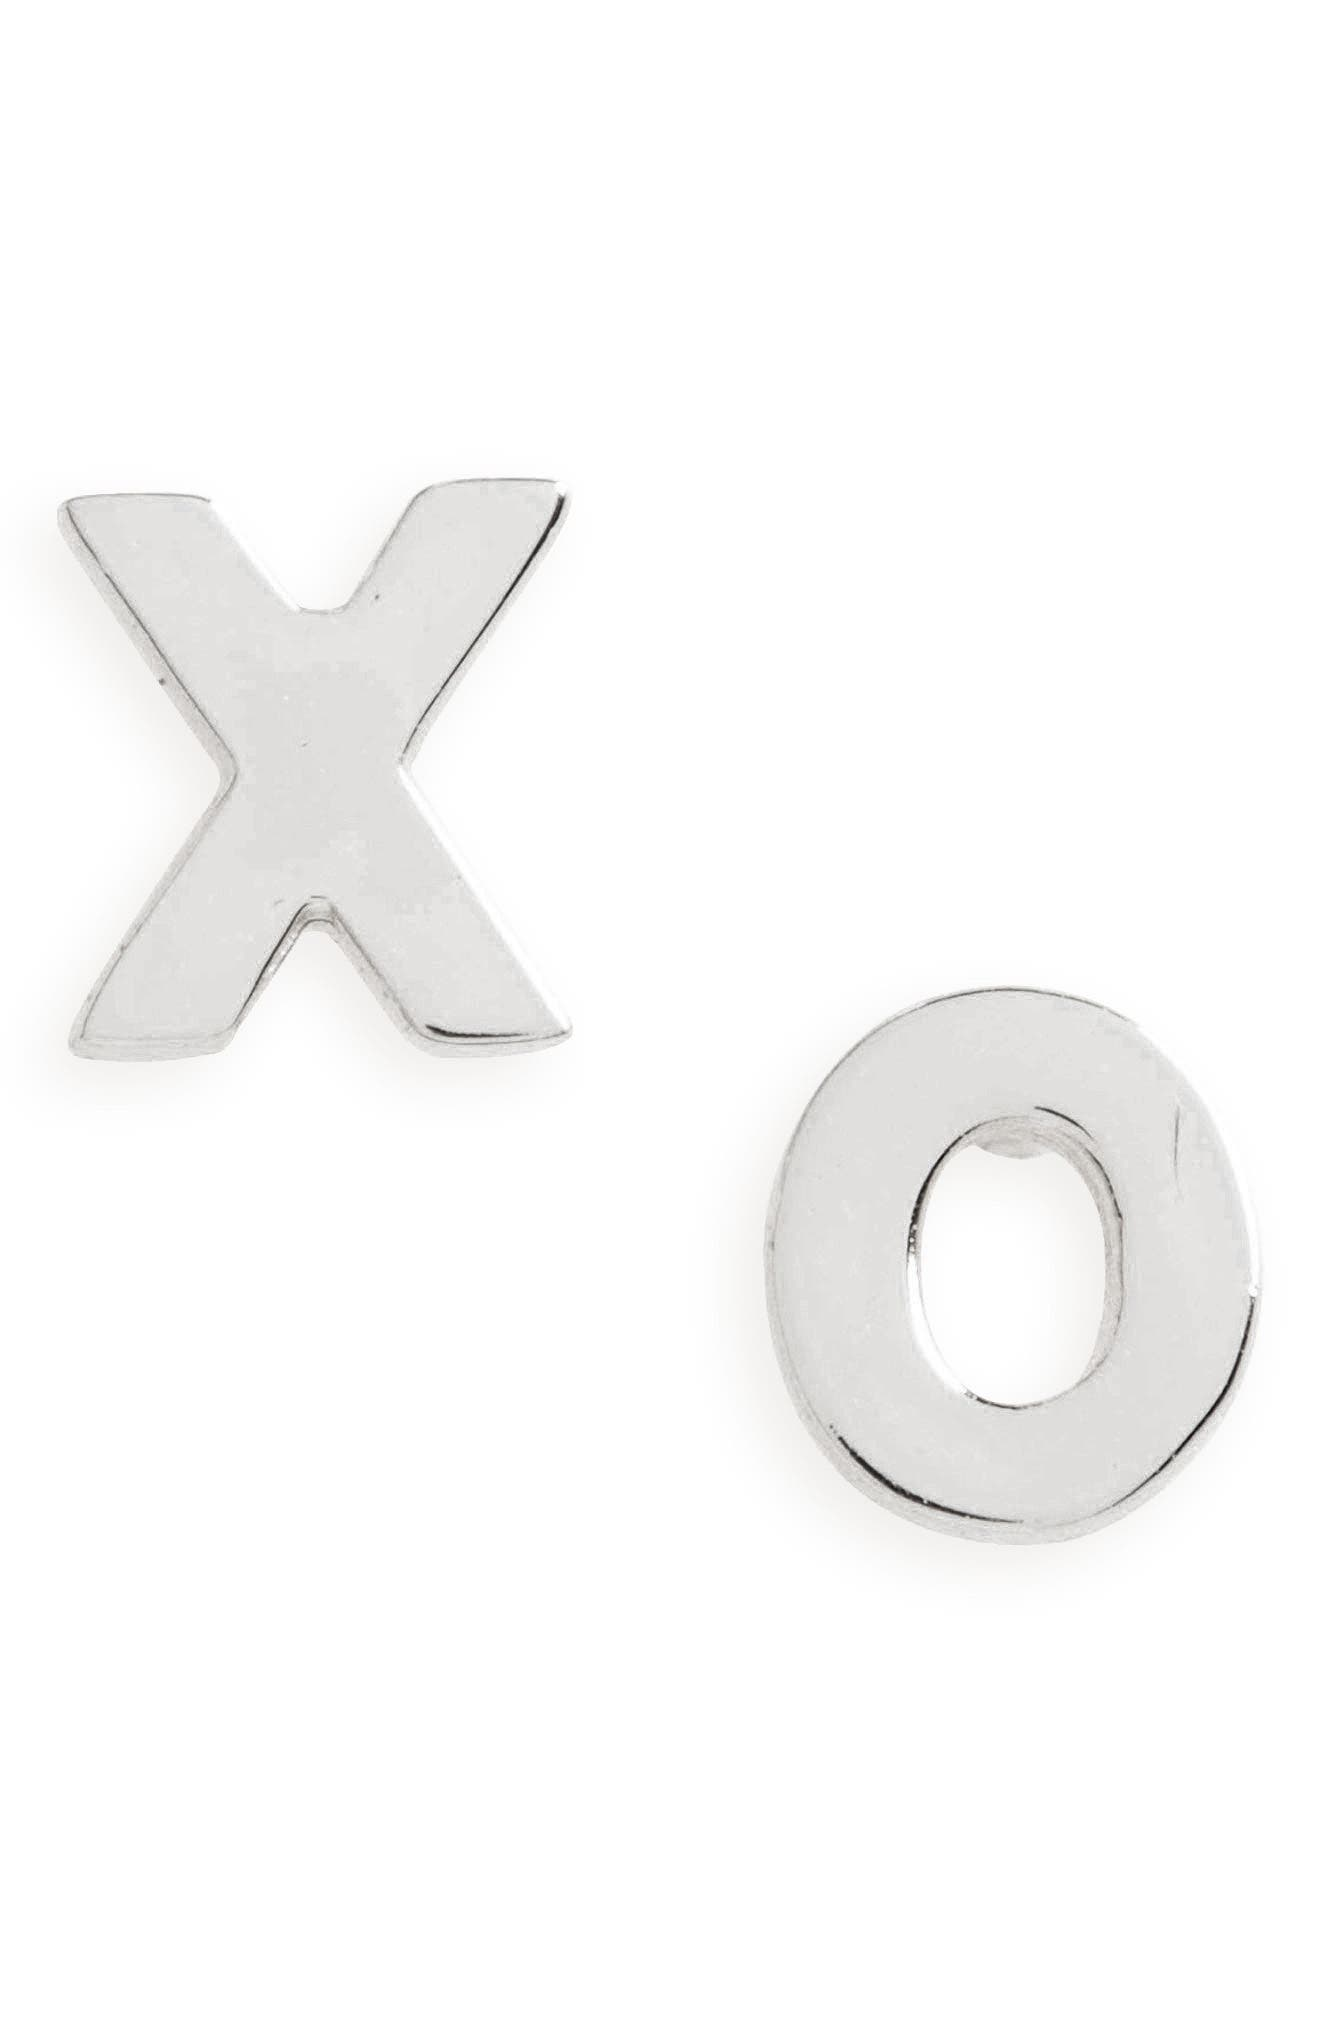 XO Stud Earrings,                             Main thumbnail 1, color,